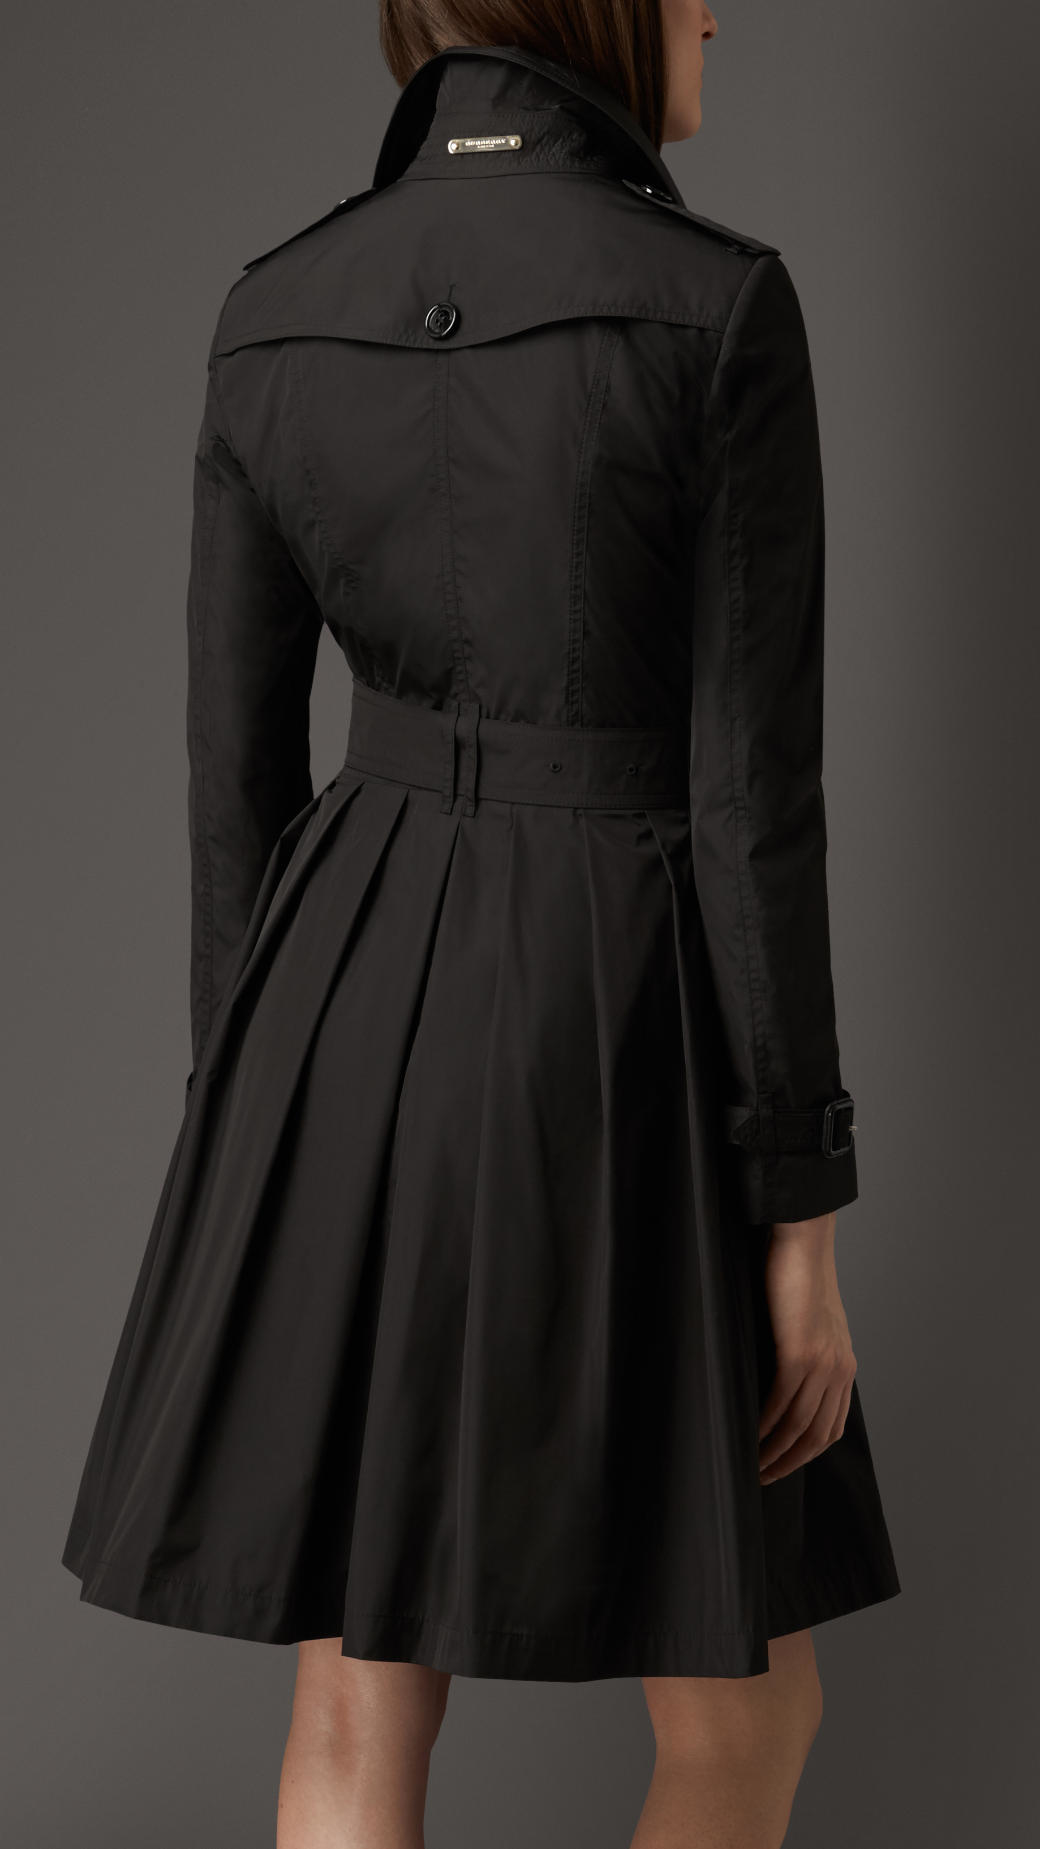 Burberry Skirted Trench Coat in Black